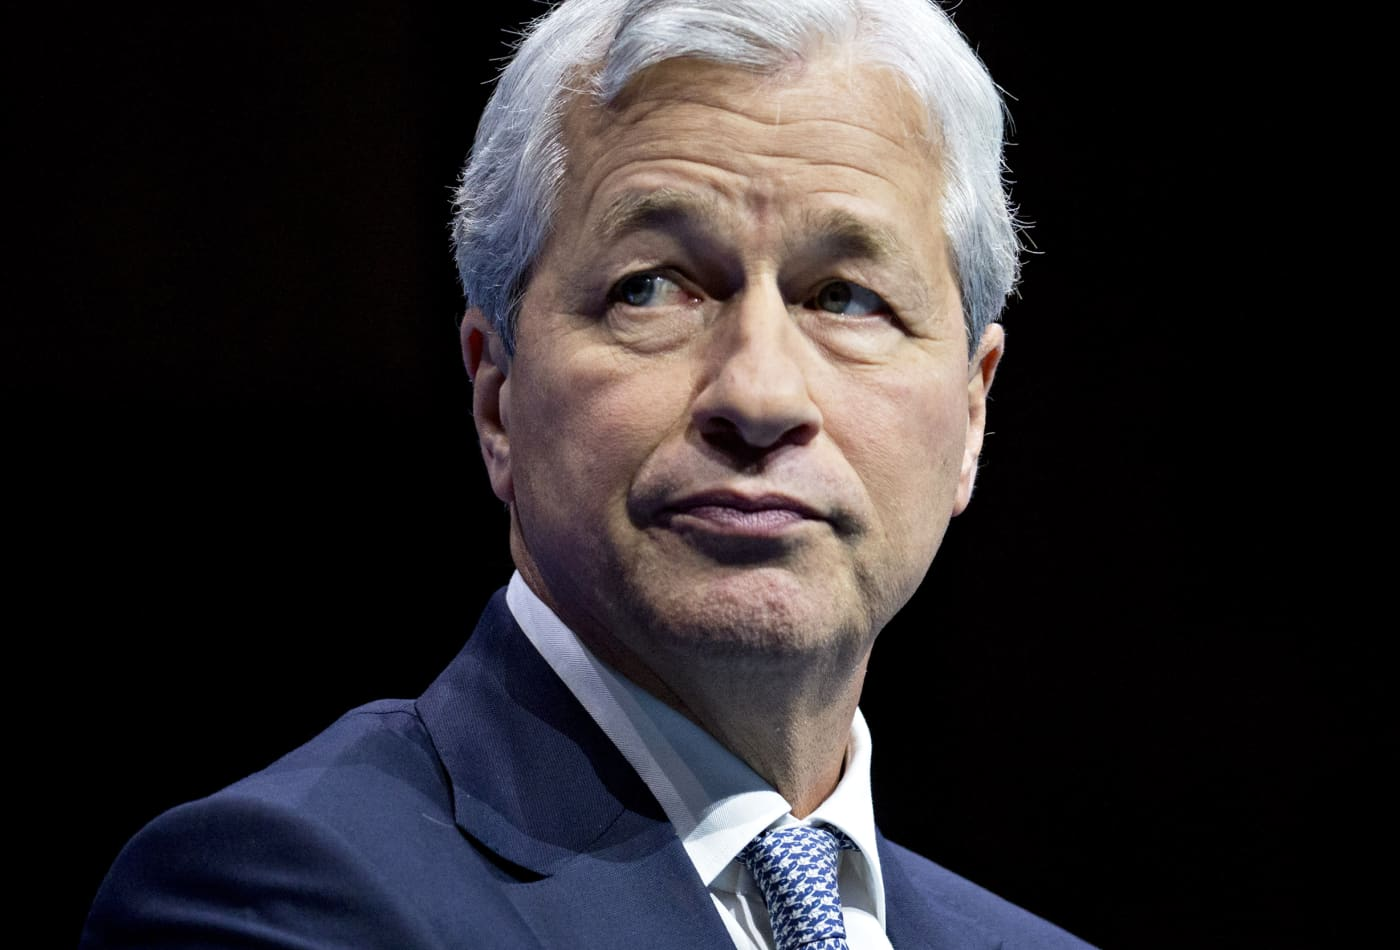 JPMorgan, led by bitcoin skeptic Jamie Dimon, quietly unveils access to a half-dozen crypto funds